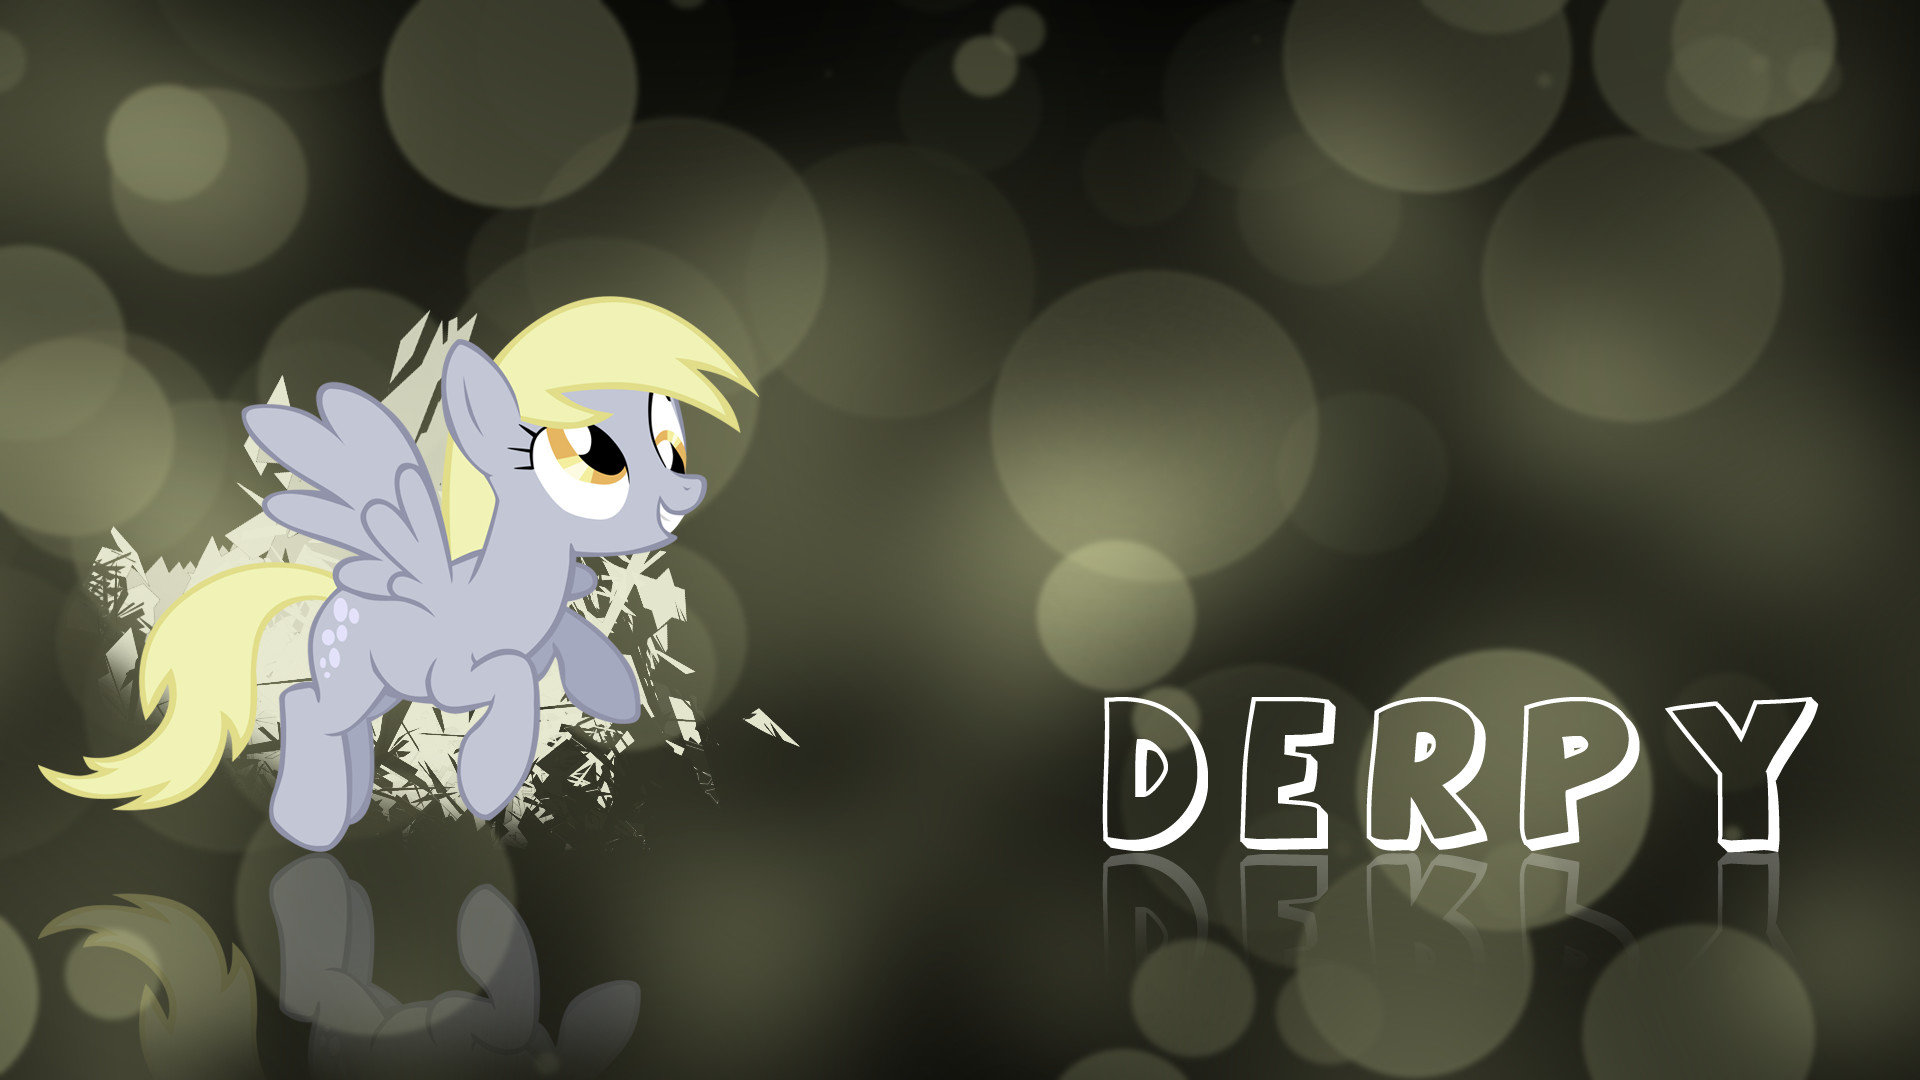 Awesome Derpy Hooves free wallpaper ID:154269 for full hd desktop